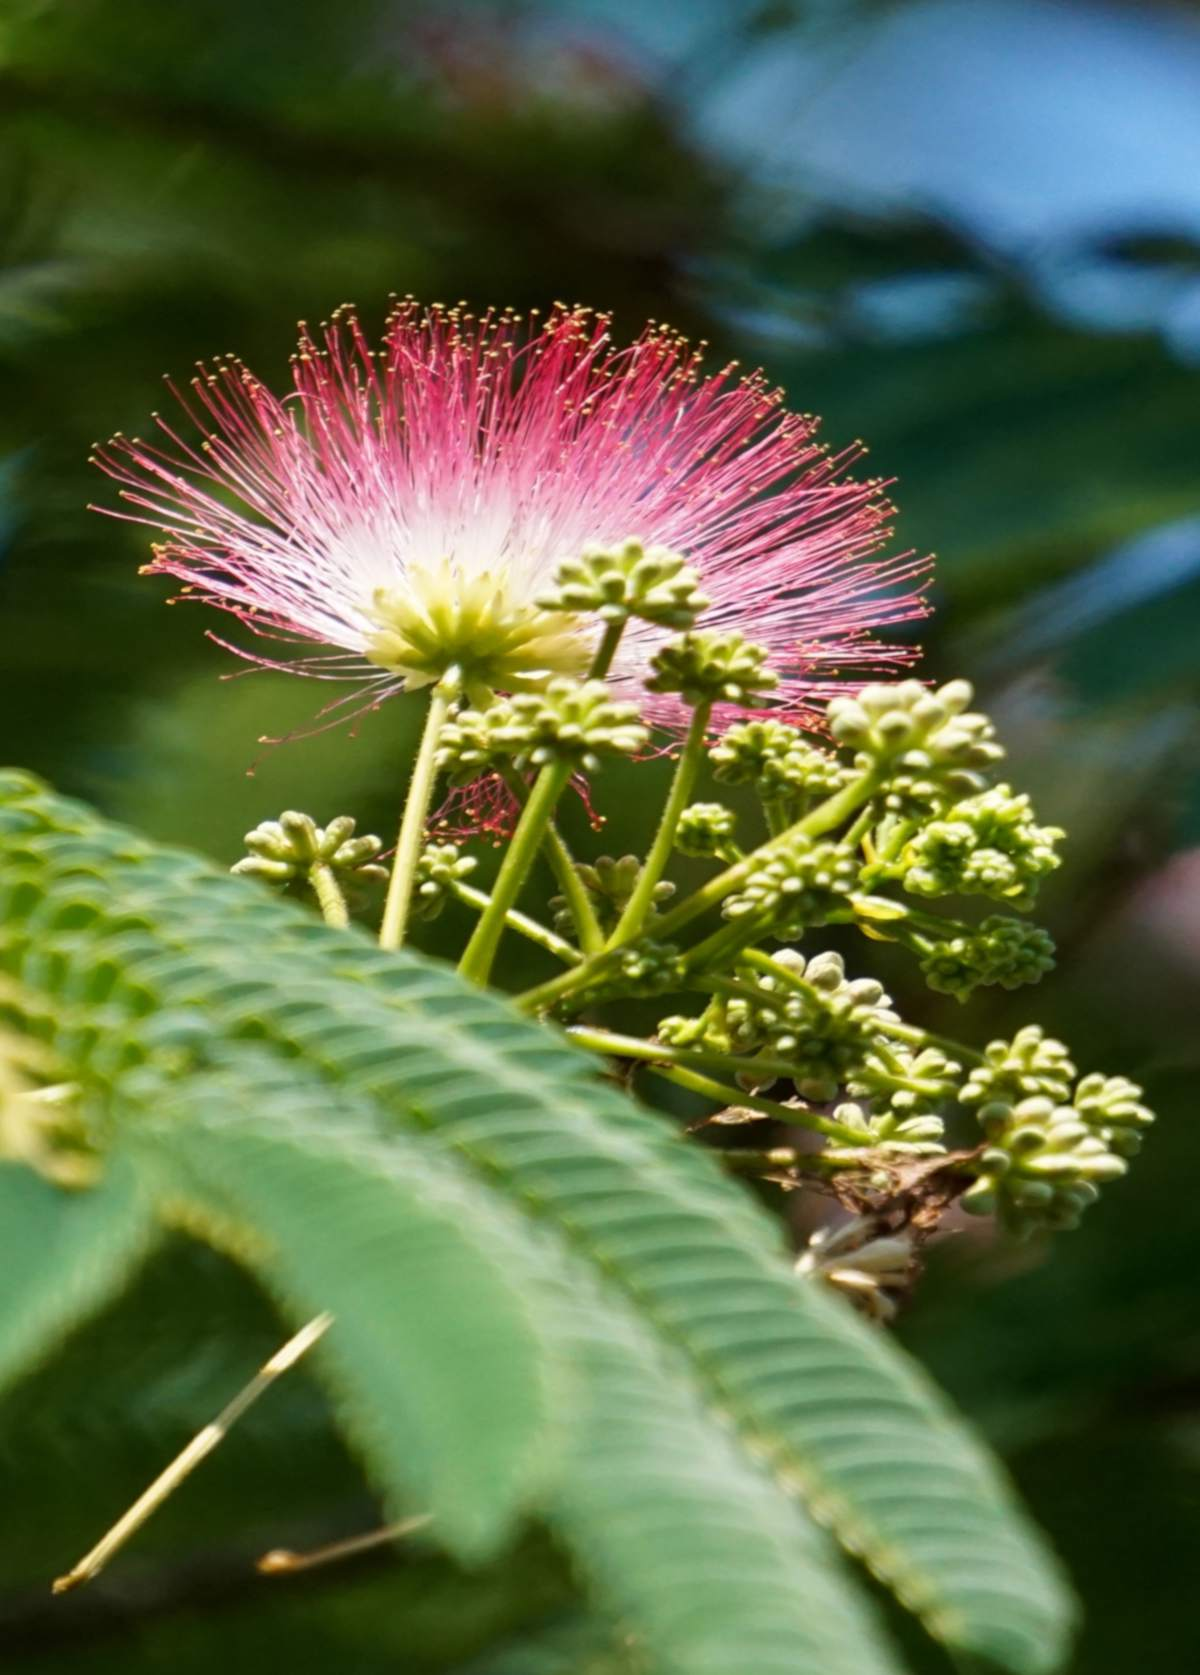 Silk tree flower with pink rim and white center